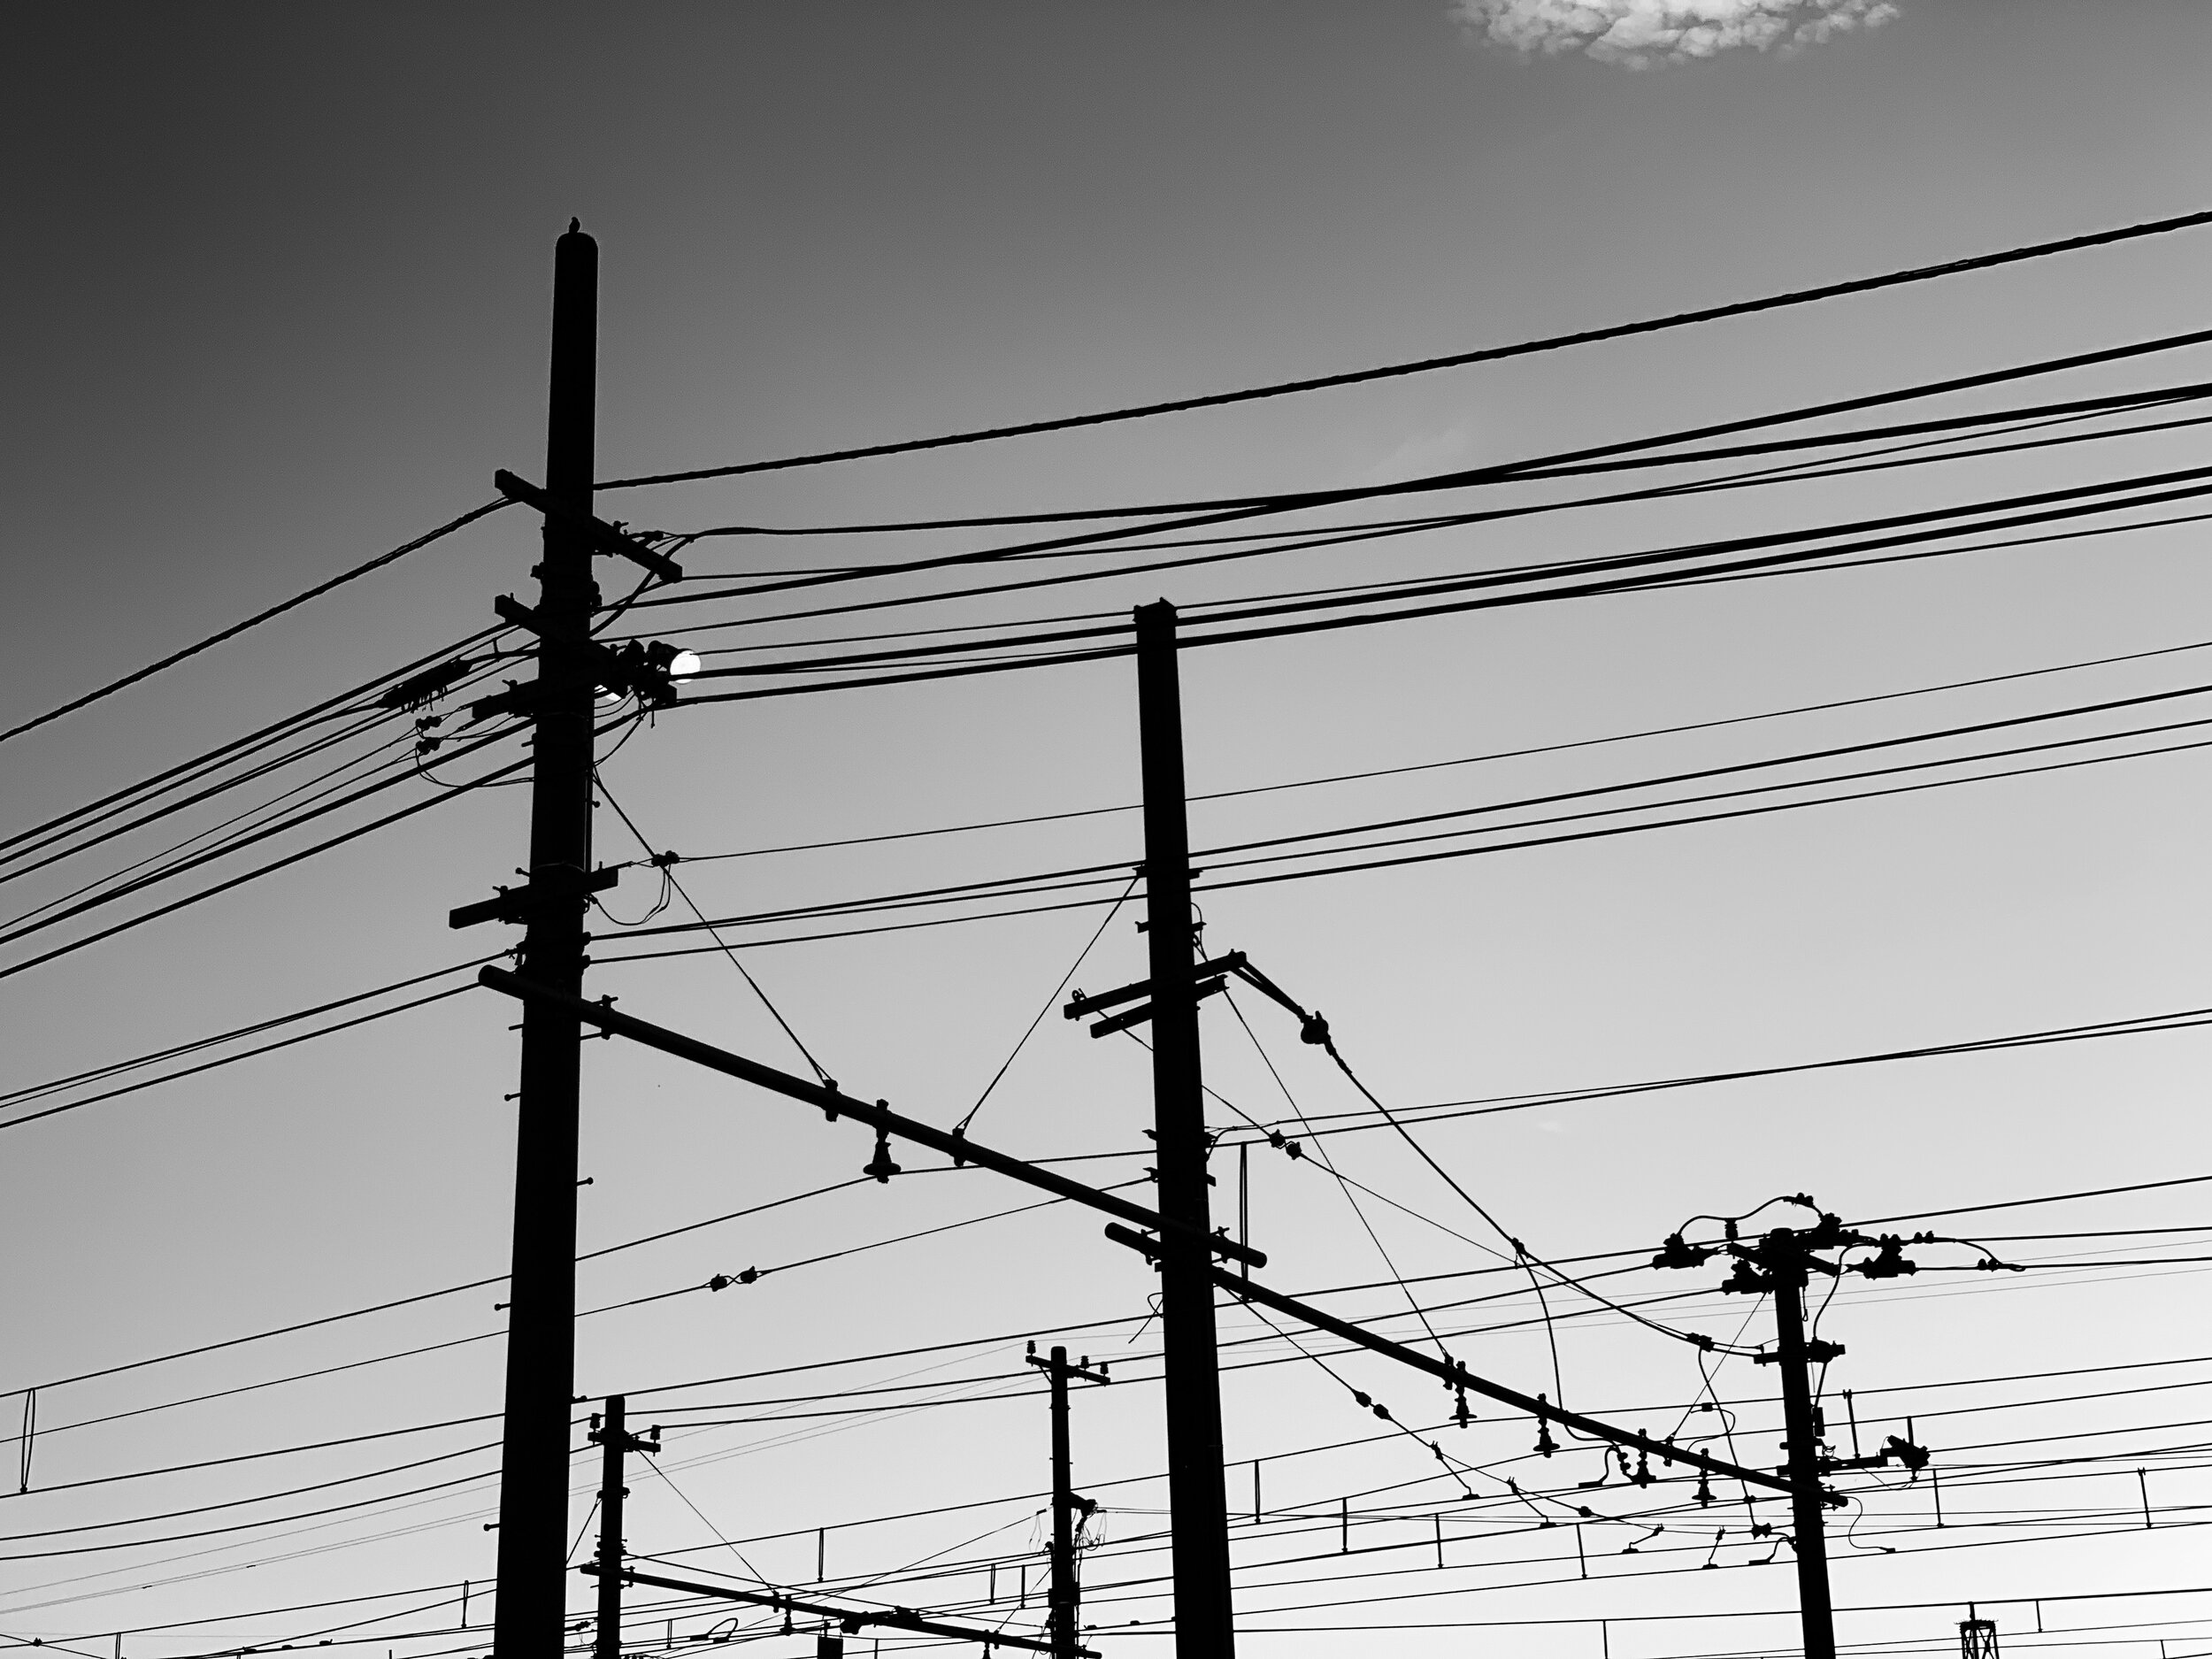 electrical wires in black and white